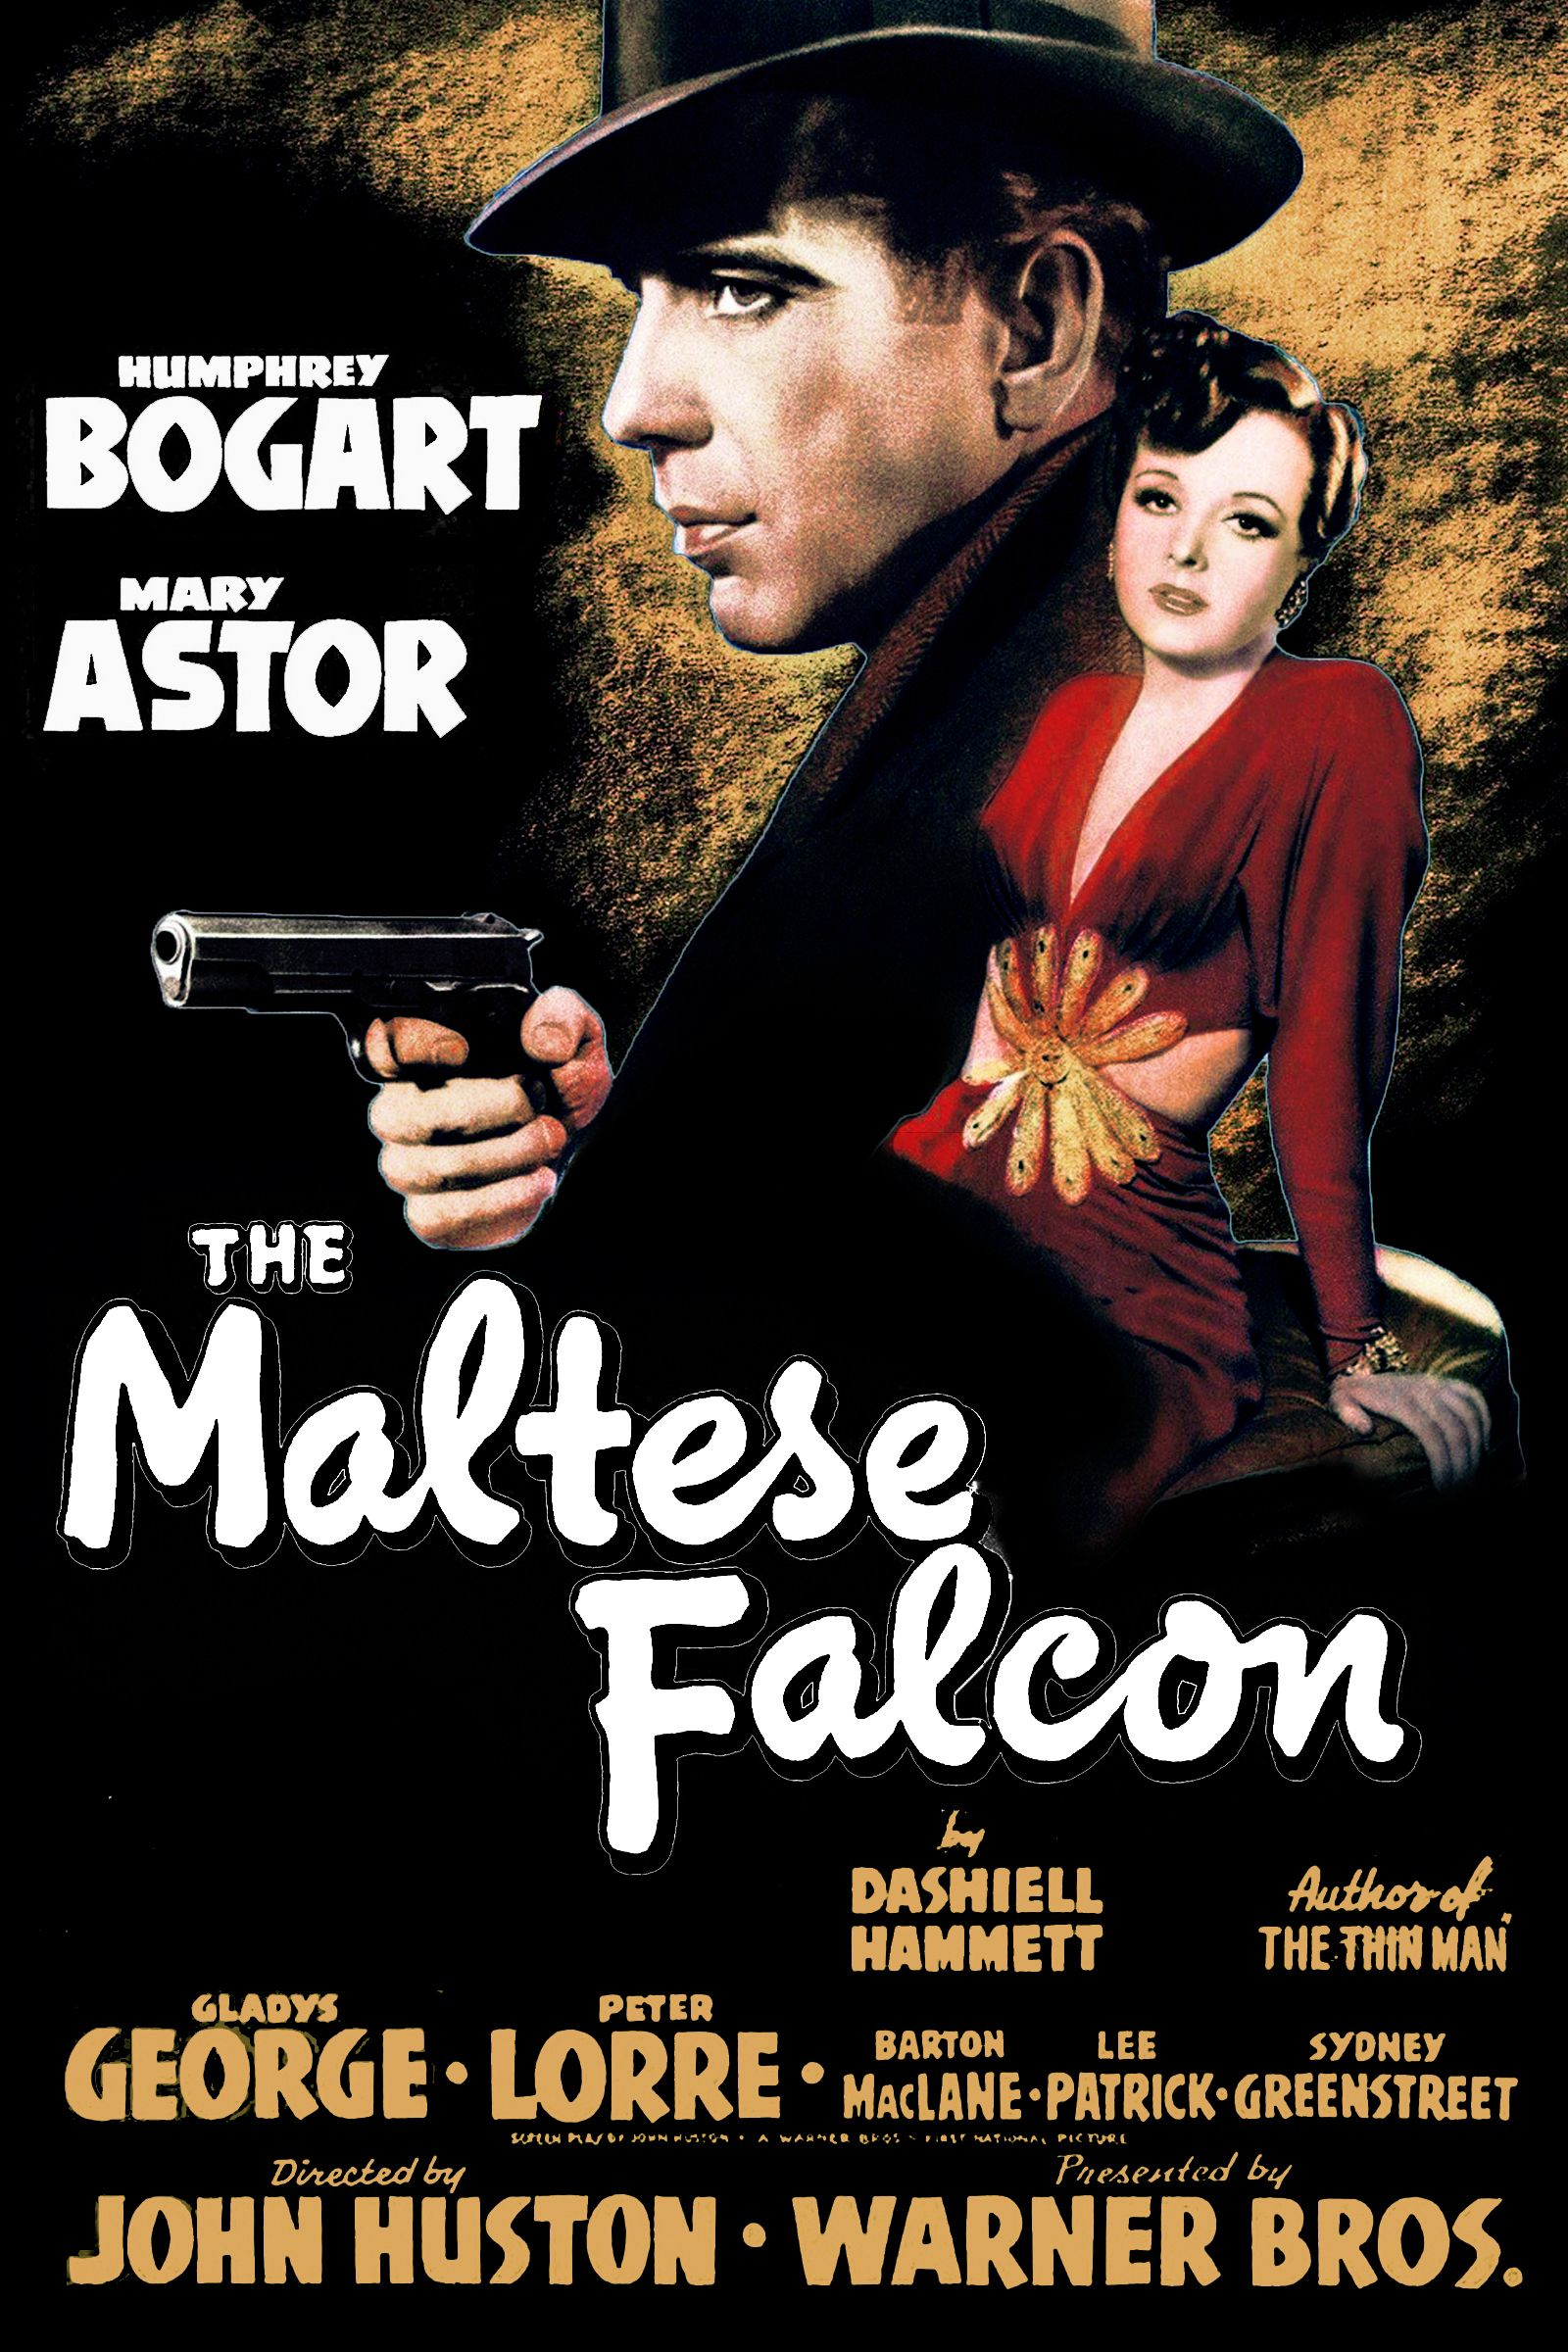 The Maltese Falcon Is A 1941 Warner Bros Film Noir Based On The Novel Of The Same Name By Dashiell Hamme Old Movie Posters Classic Movie Posters Movie Posters